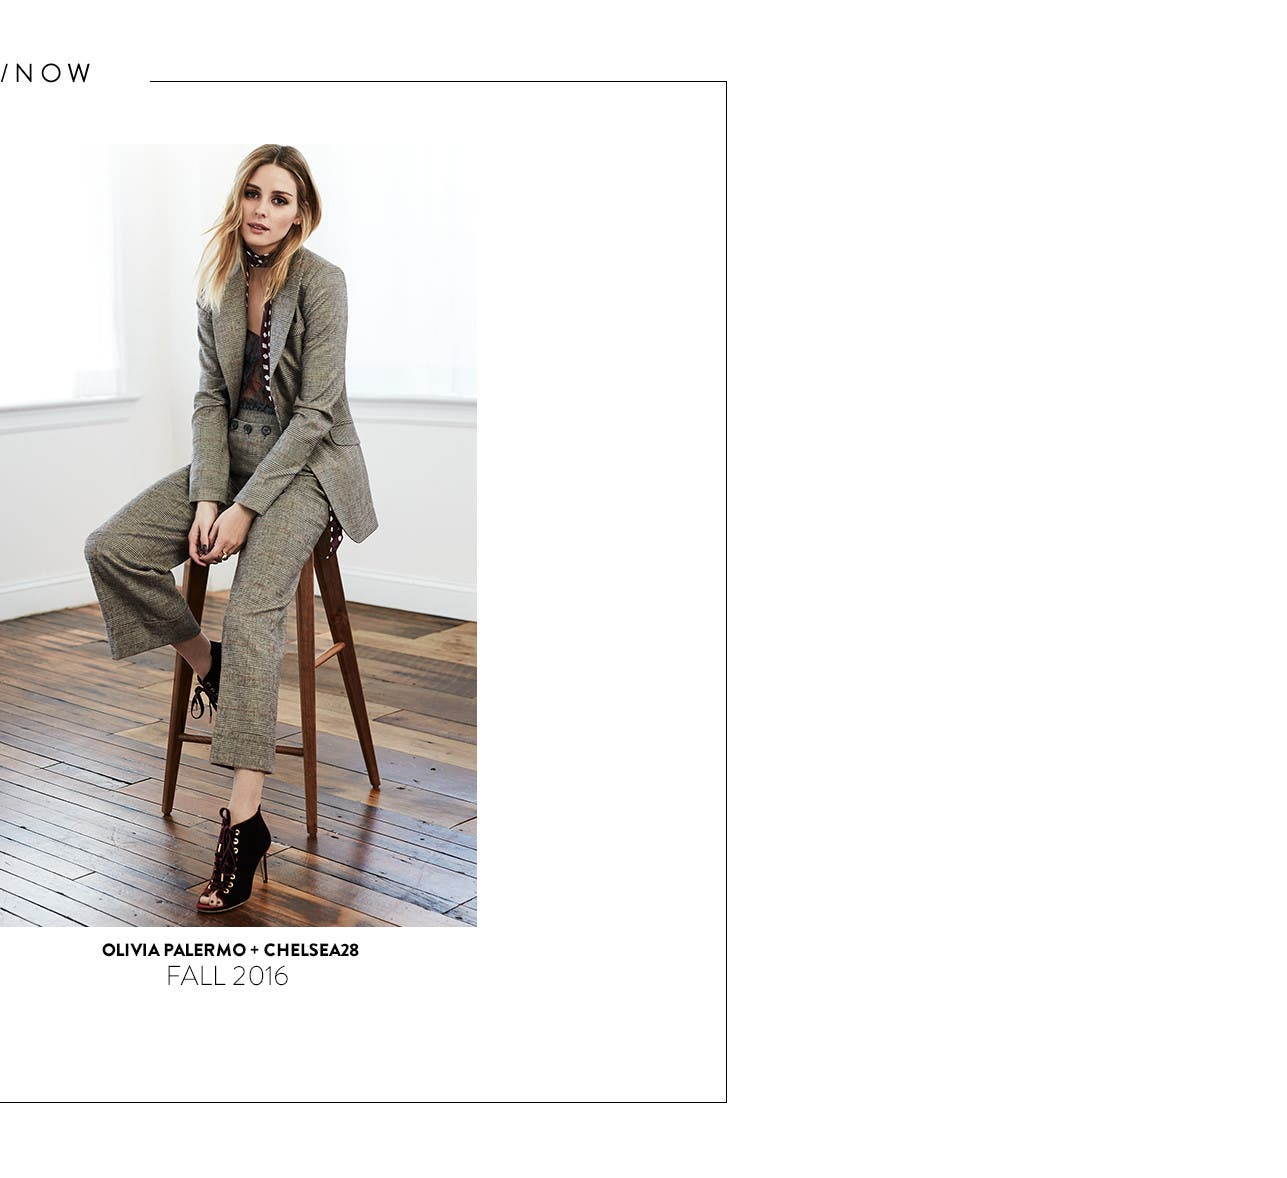 Olivia Palermo + Chelsea28: a Nordstrom exclusive collection.